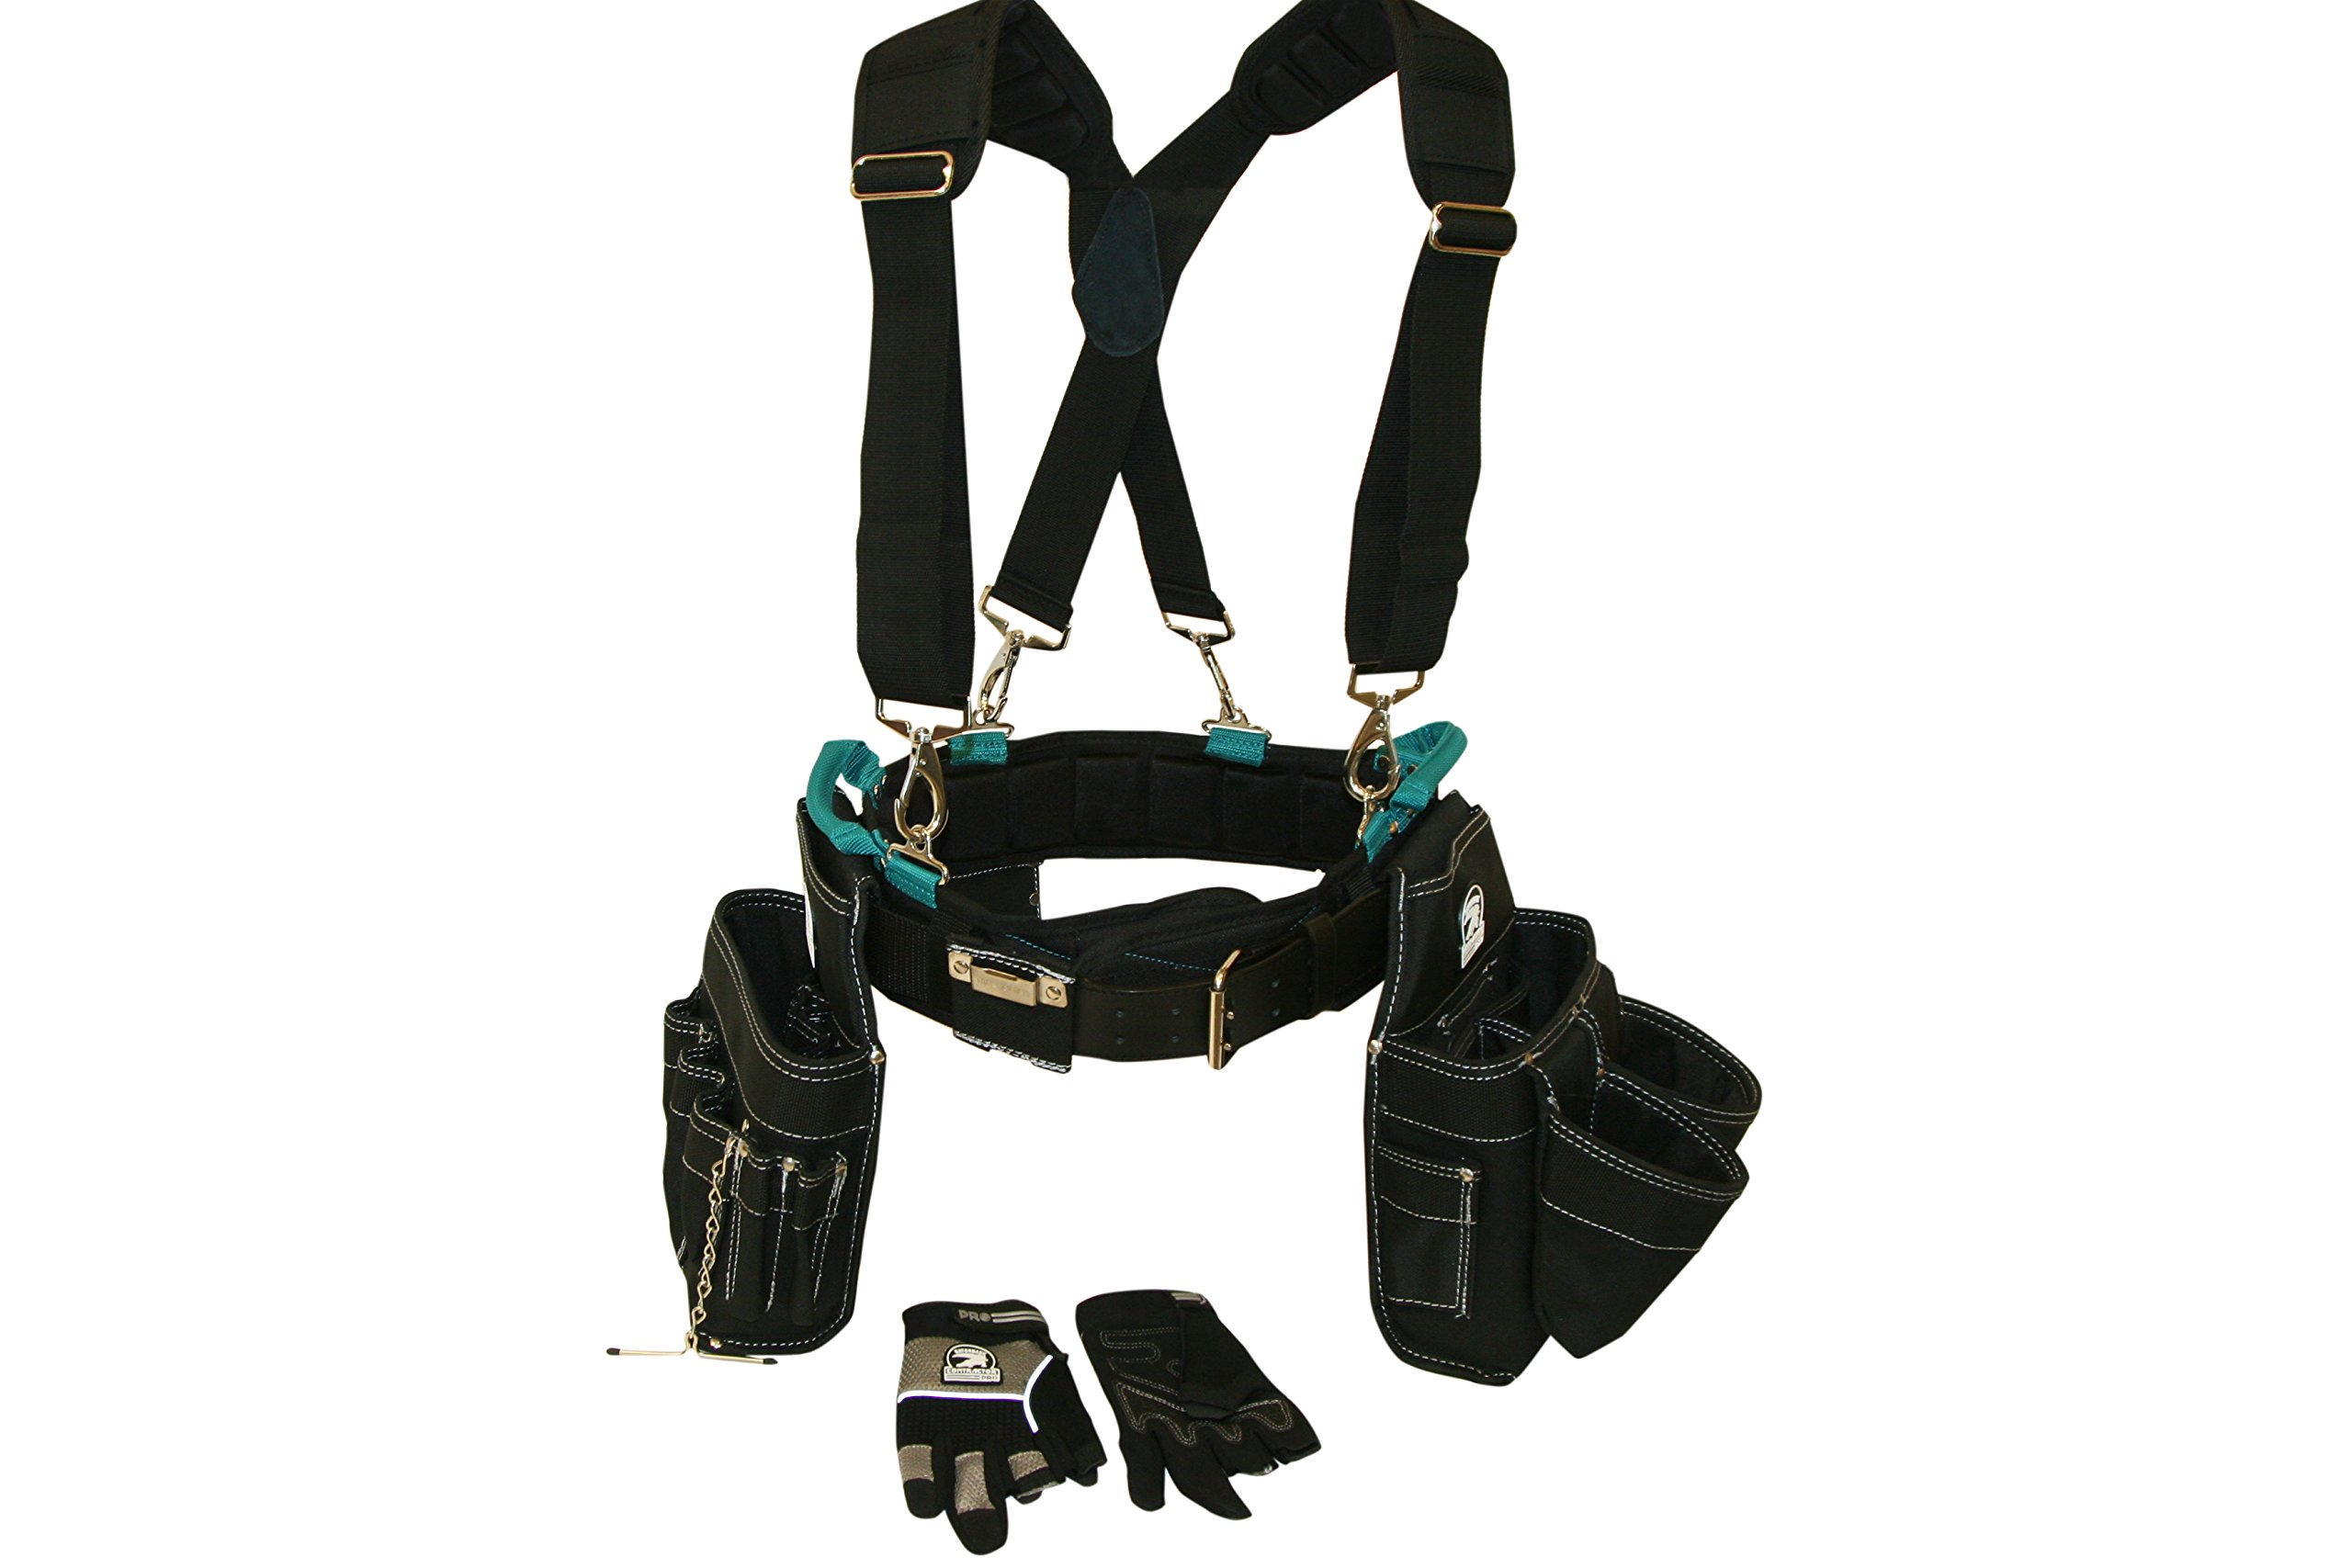 Professional Electrician's Complete Package Plus+ (Tool Belt, Bucket Tote, Suspenders, and Gloves) SMALL 26-30 Inch Waist